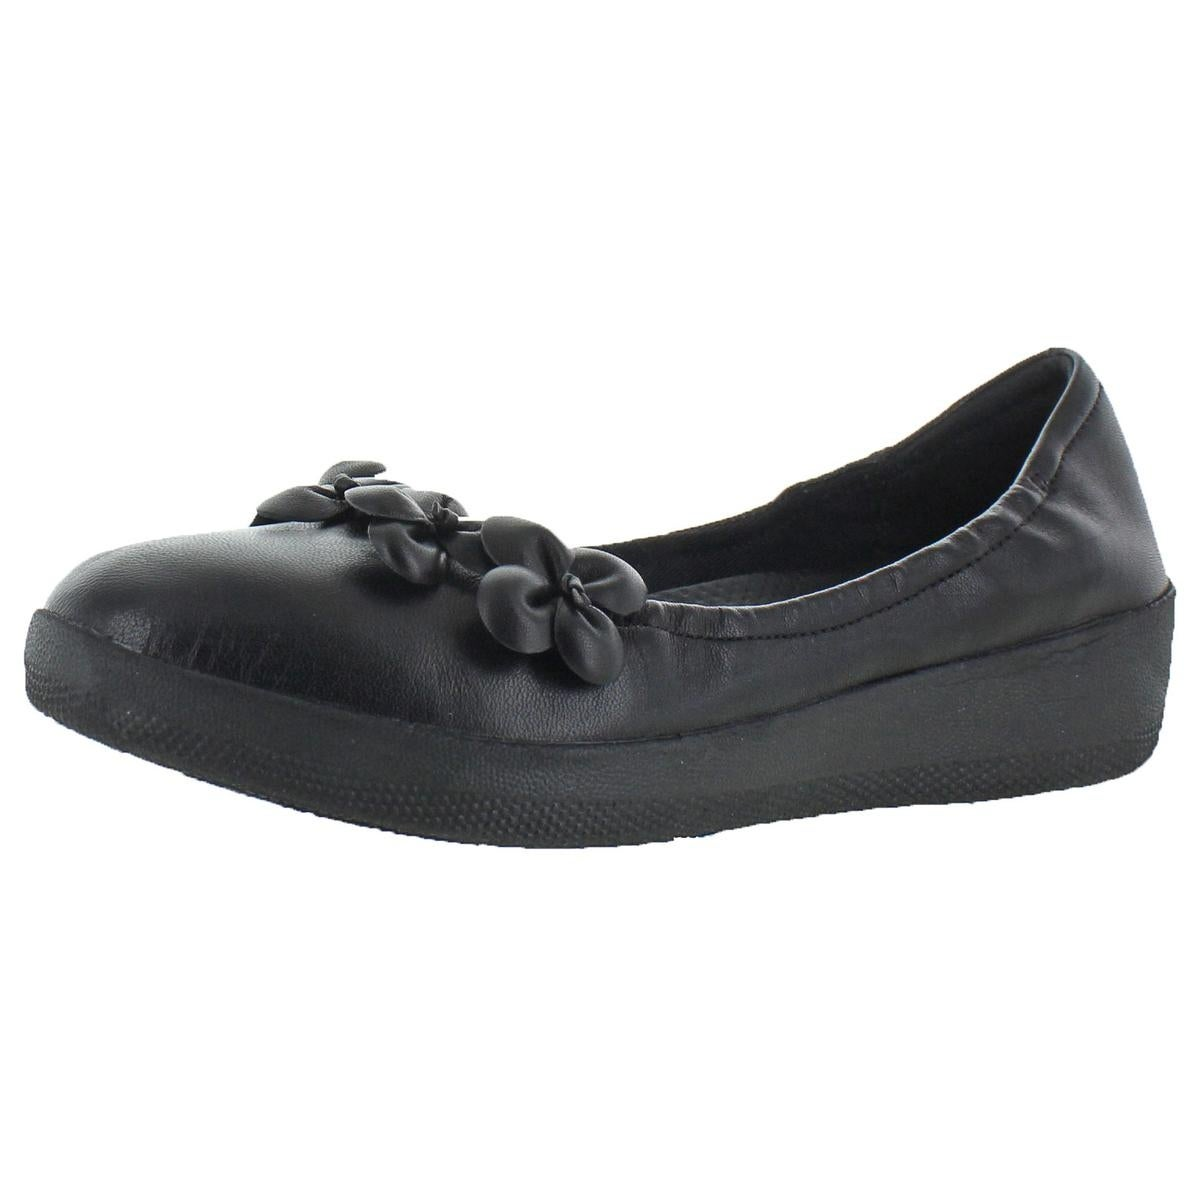 e955c36995110 Shop Fitflop Womens Superballerina Ballet Flats SupercomFF Toning - Free  Shipping On Orders Over  45 - Overstock - 26030276